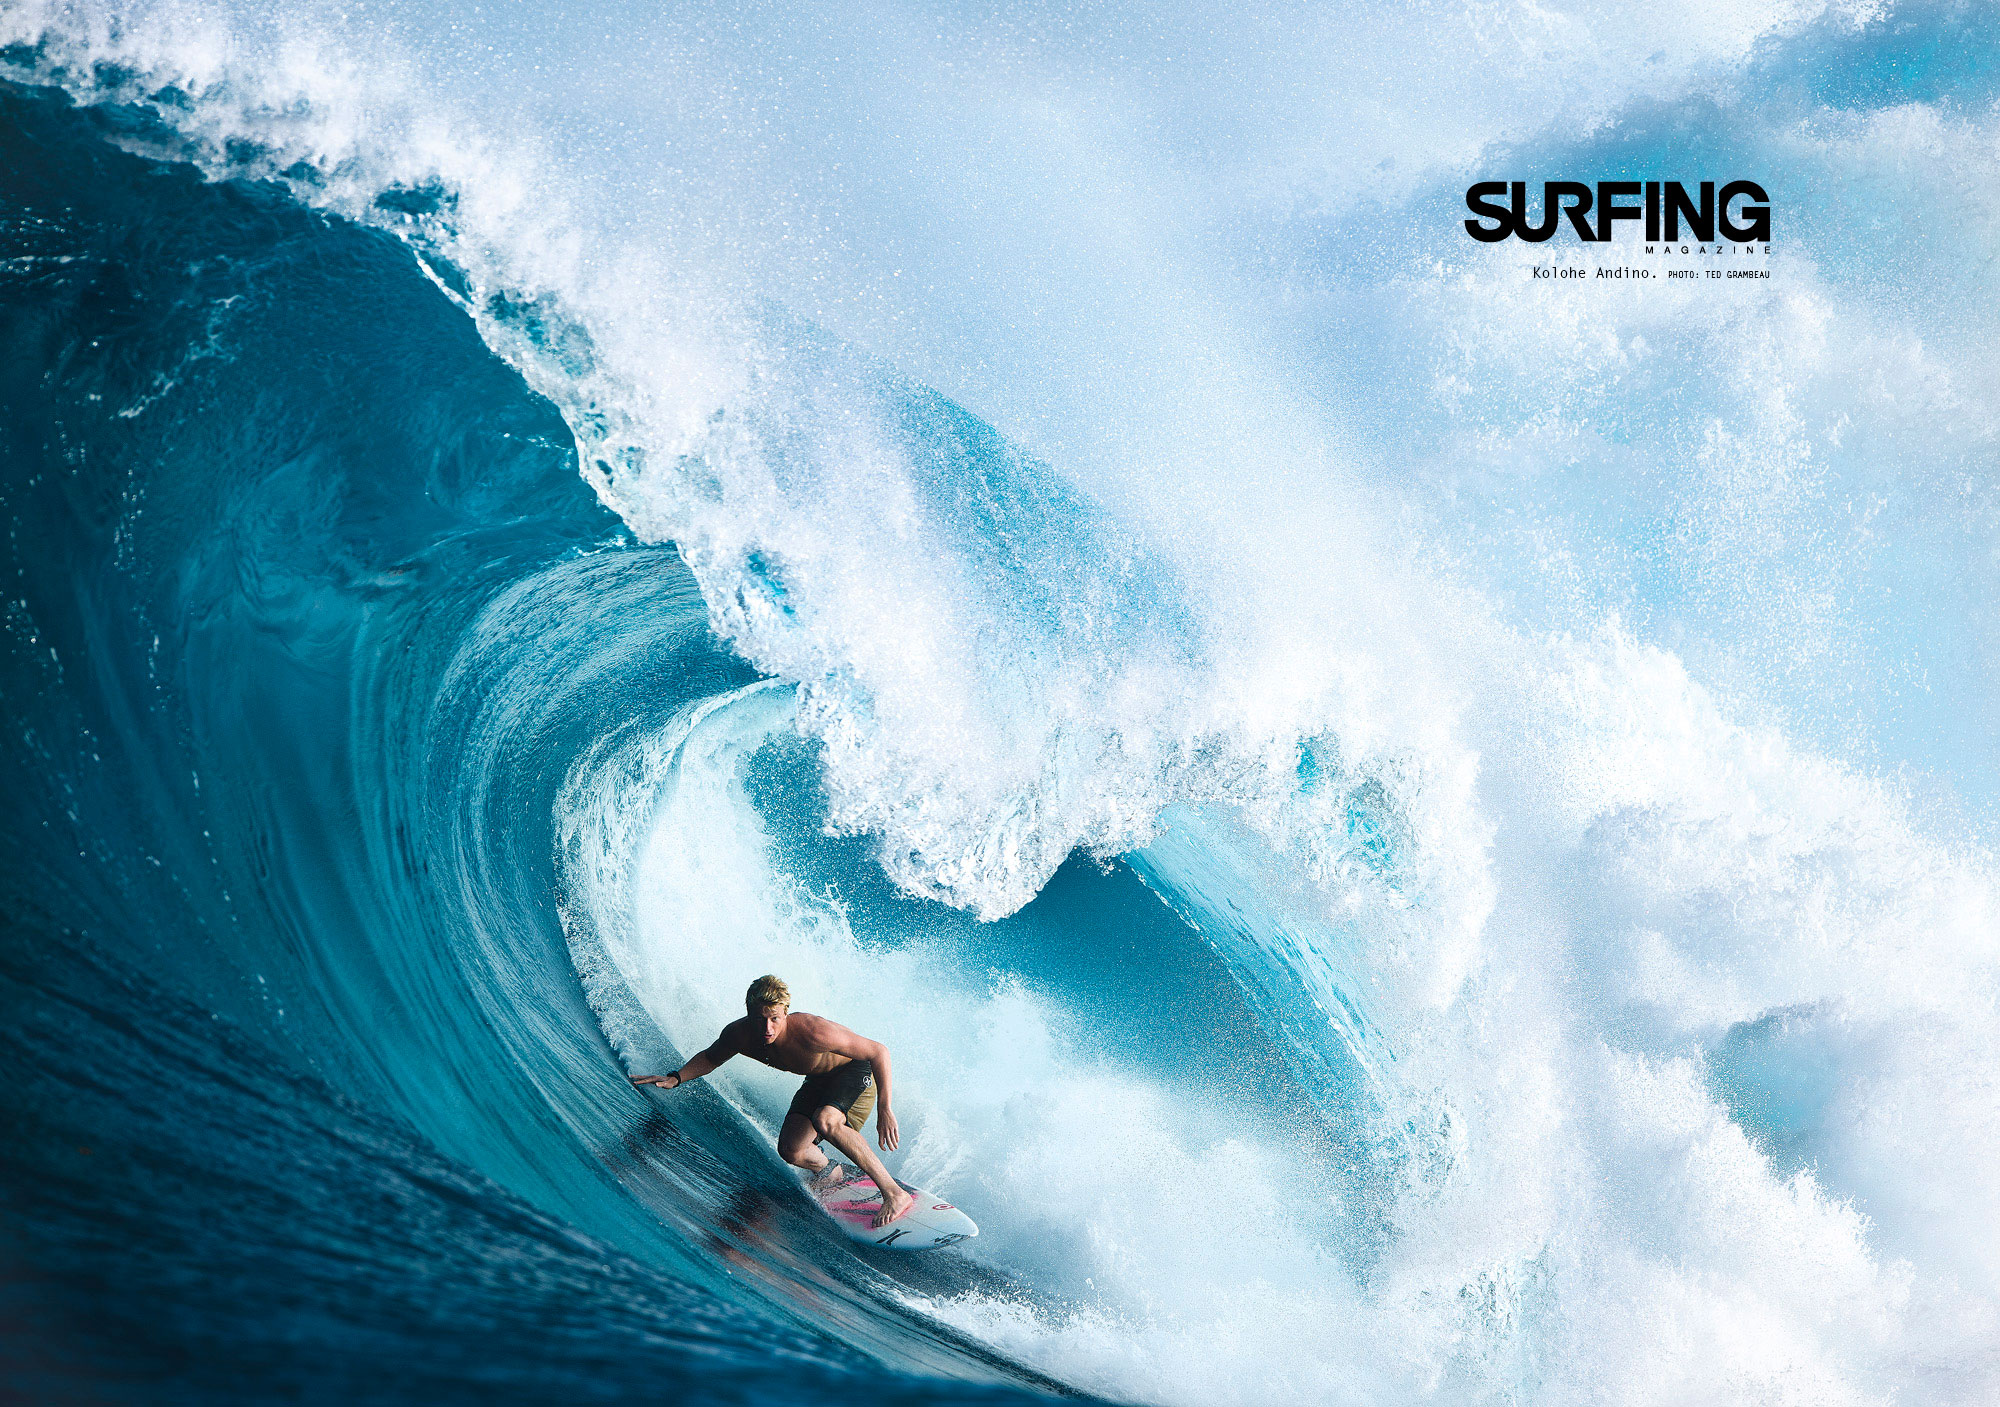 Rip Curl Girl Wallpaper May 2013 Issue Wallpaper Surfer Magazine